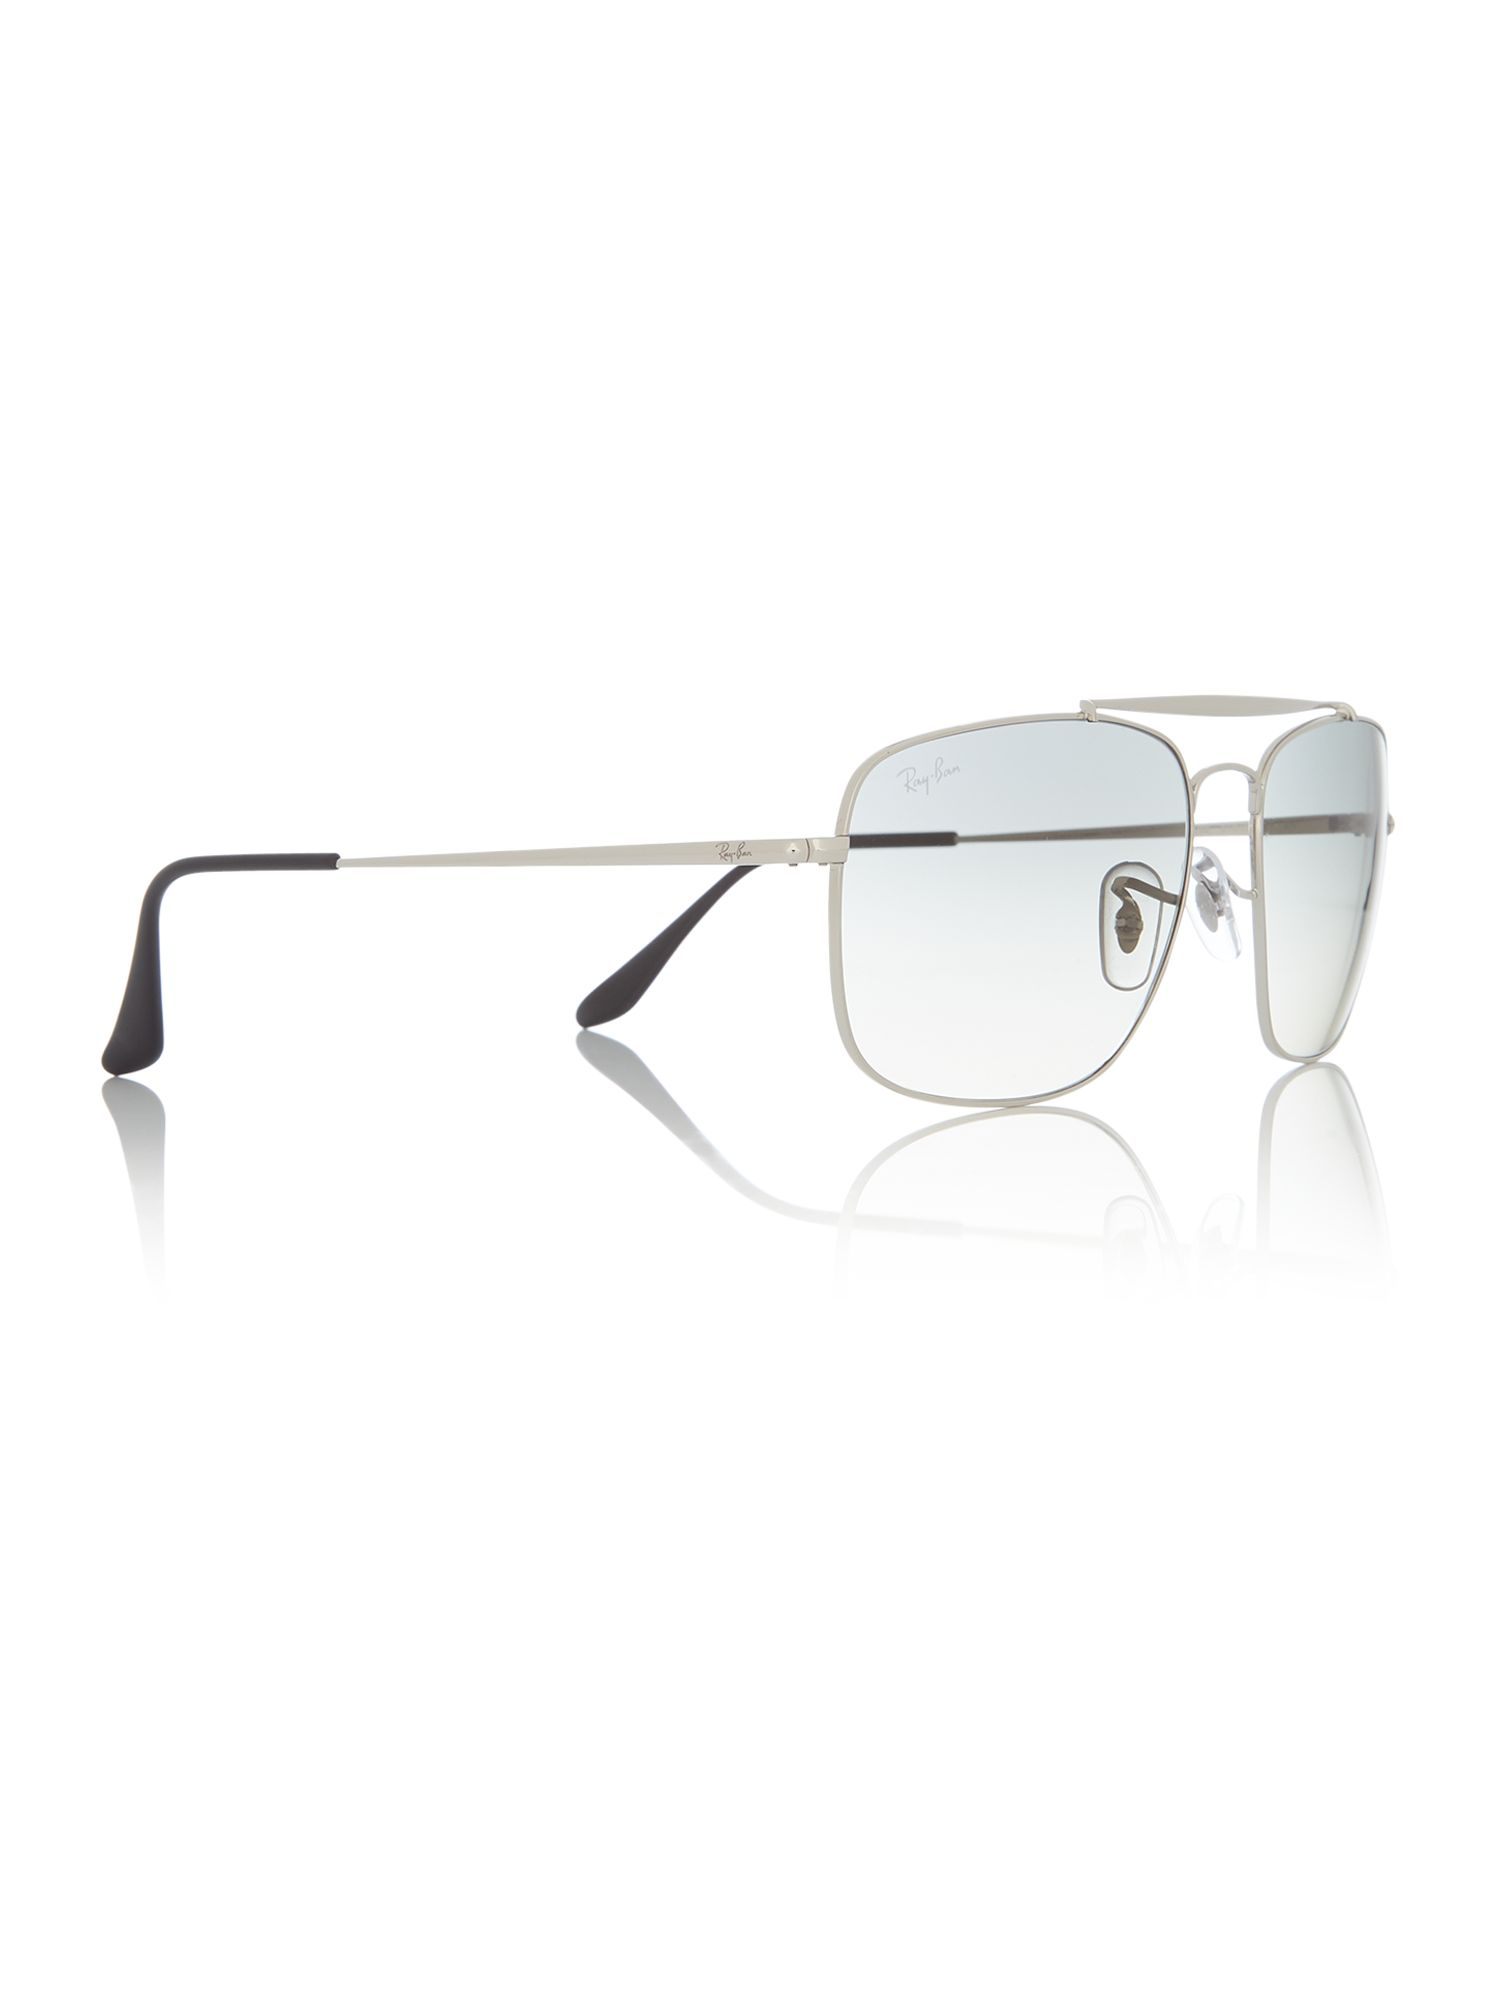 sunglasses for men men s sunglasses house of fraser Oakley NFL Sunglasses ray ban silver oo9411 square sunglasses